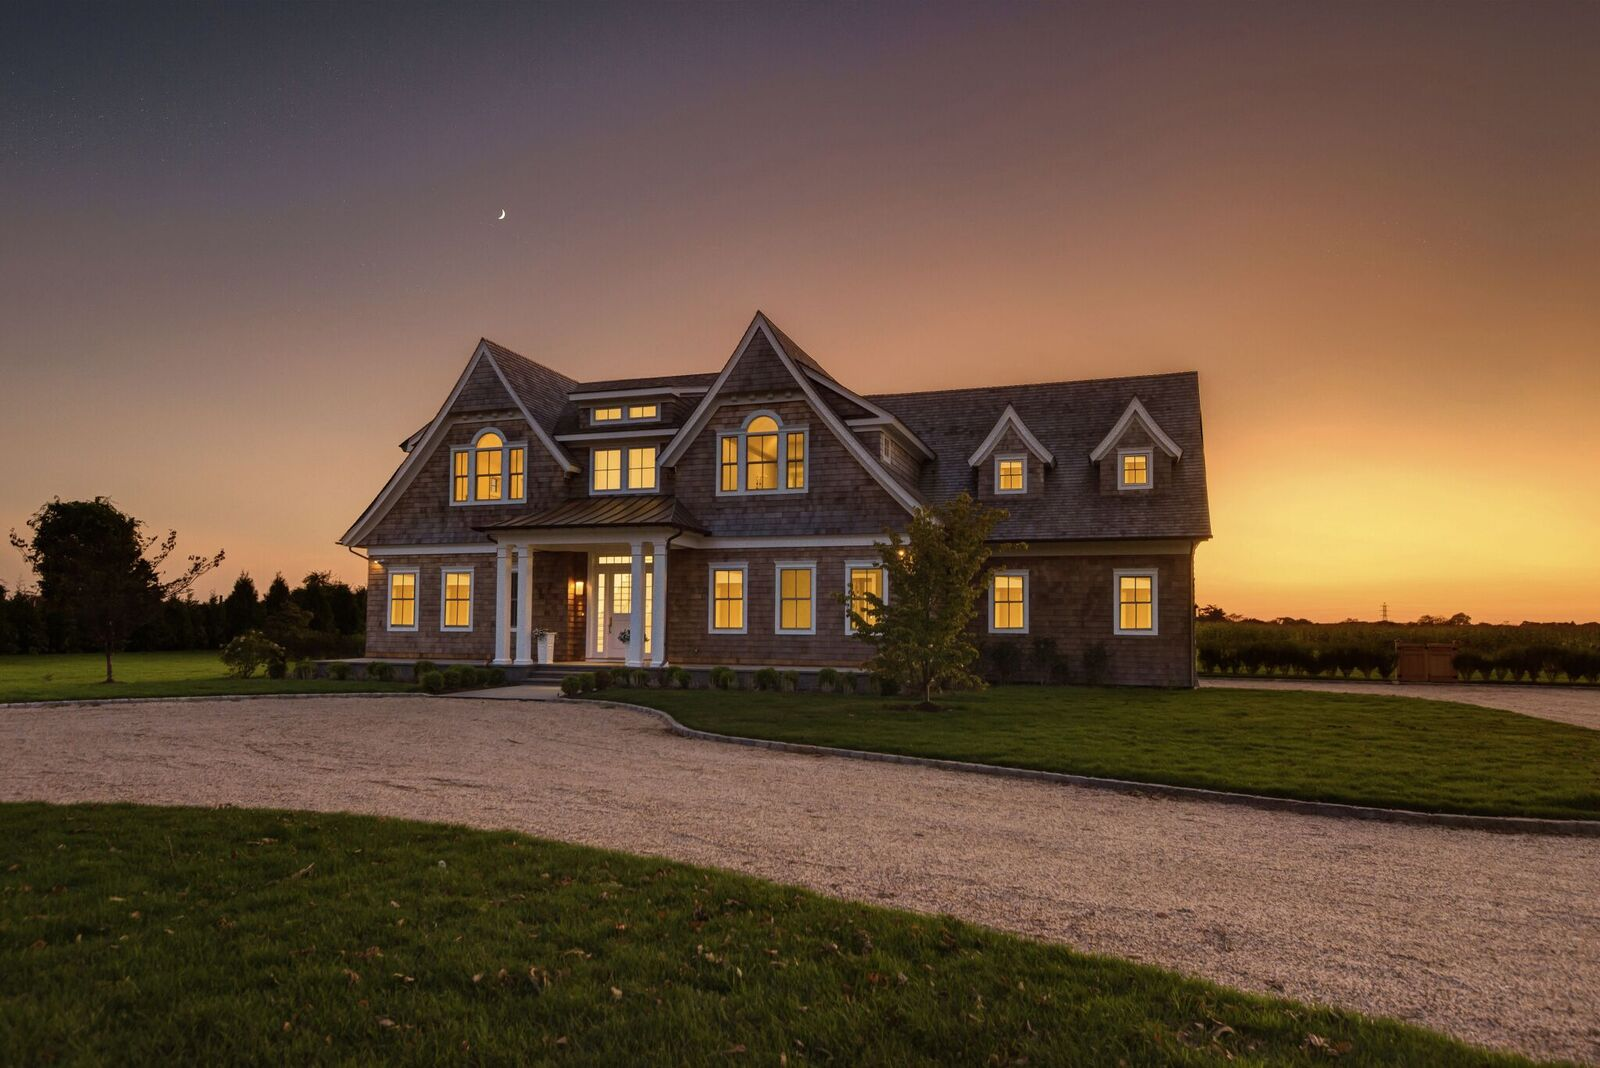 485 David Whites Ln, Southampton, NY 11968 is offered at $5,295,000 by The AVIGDOR / PENKOVA Team